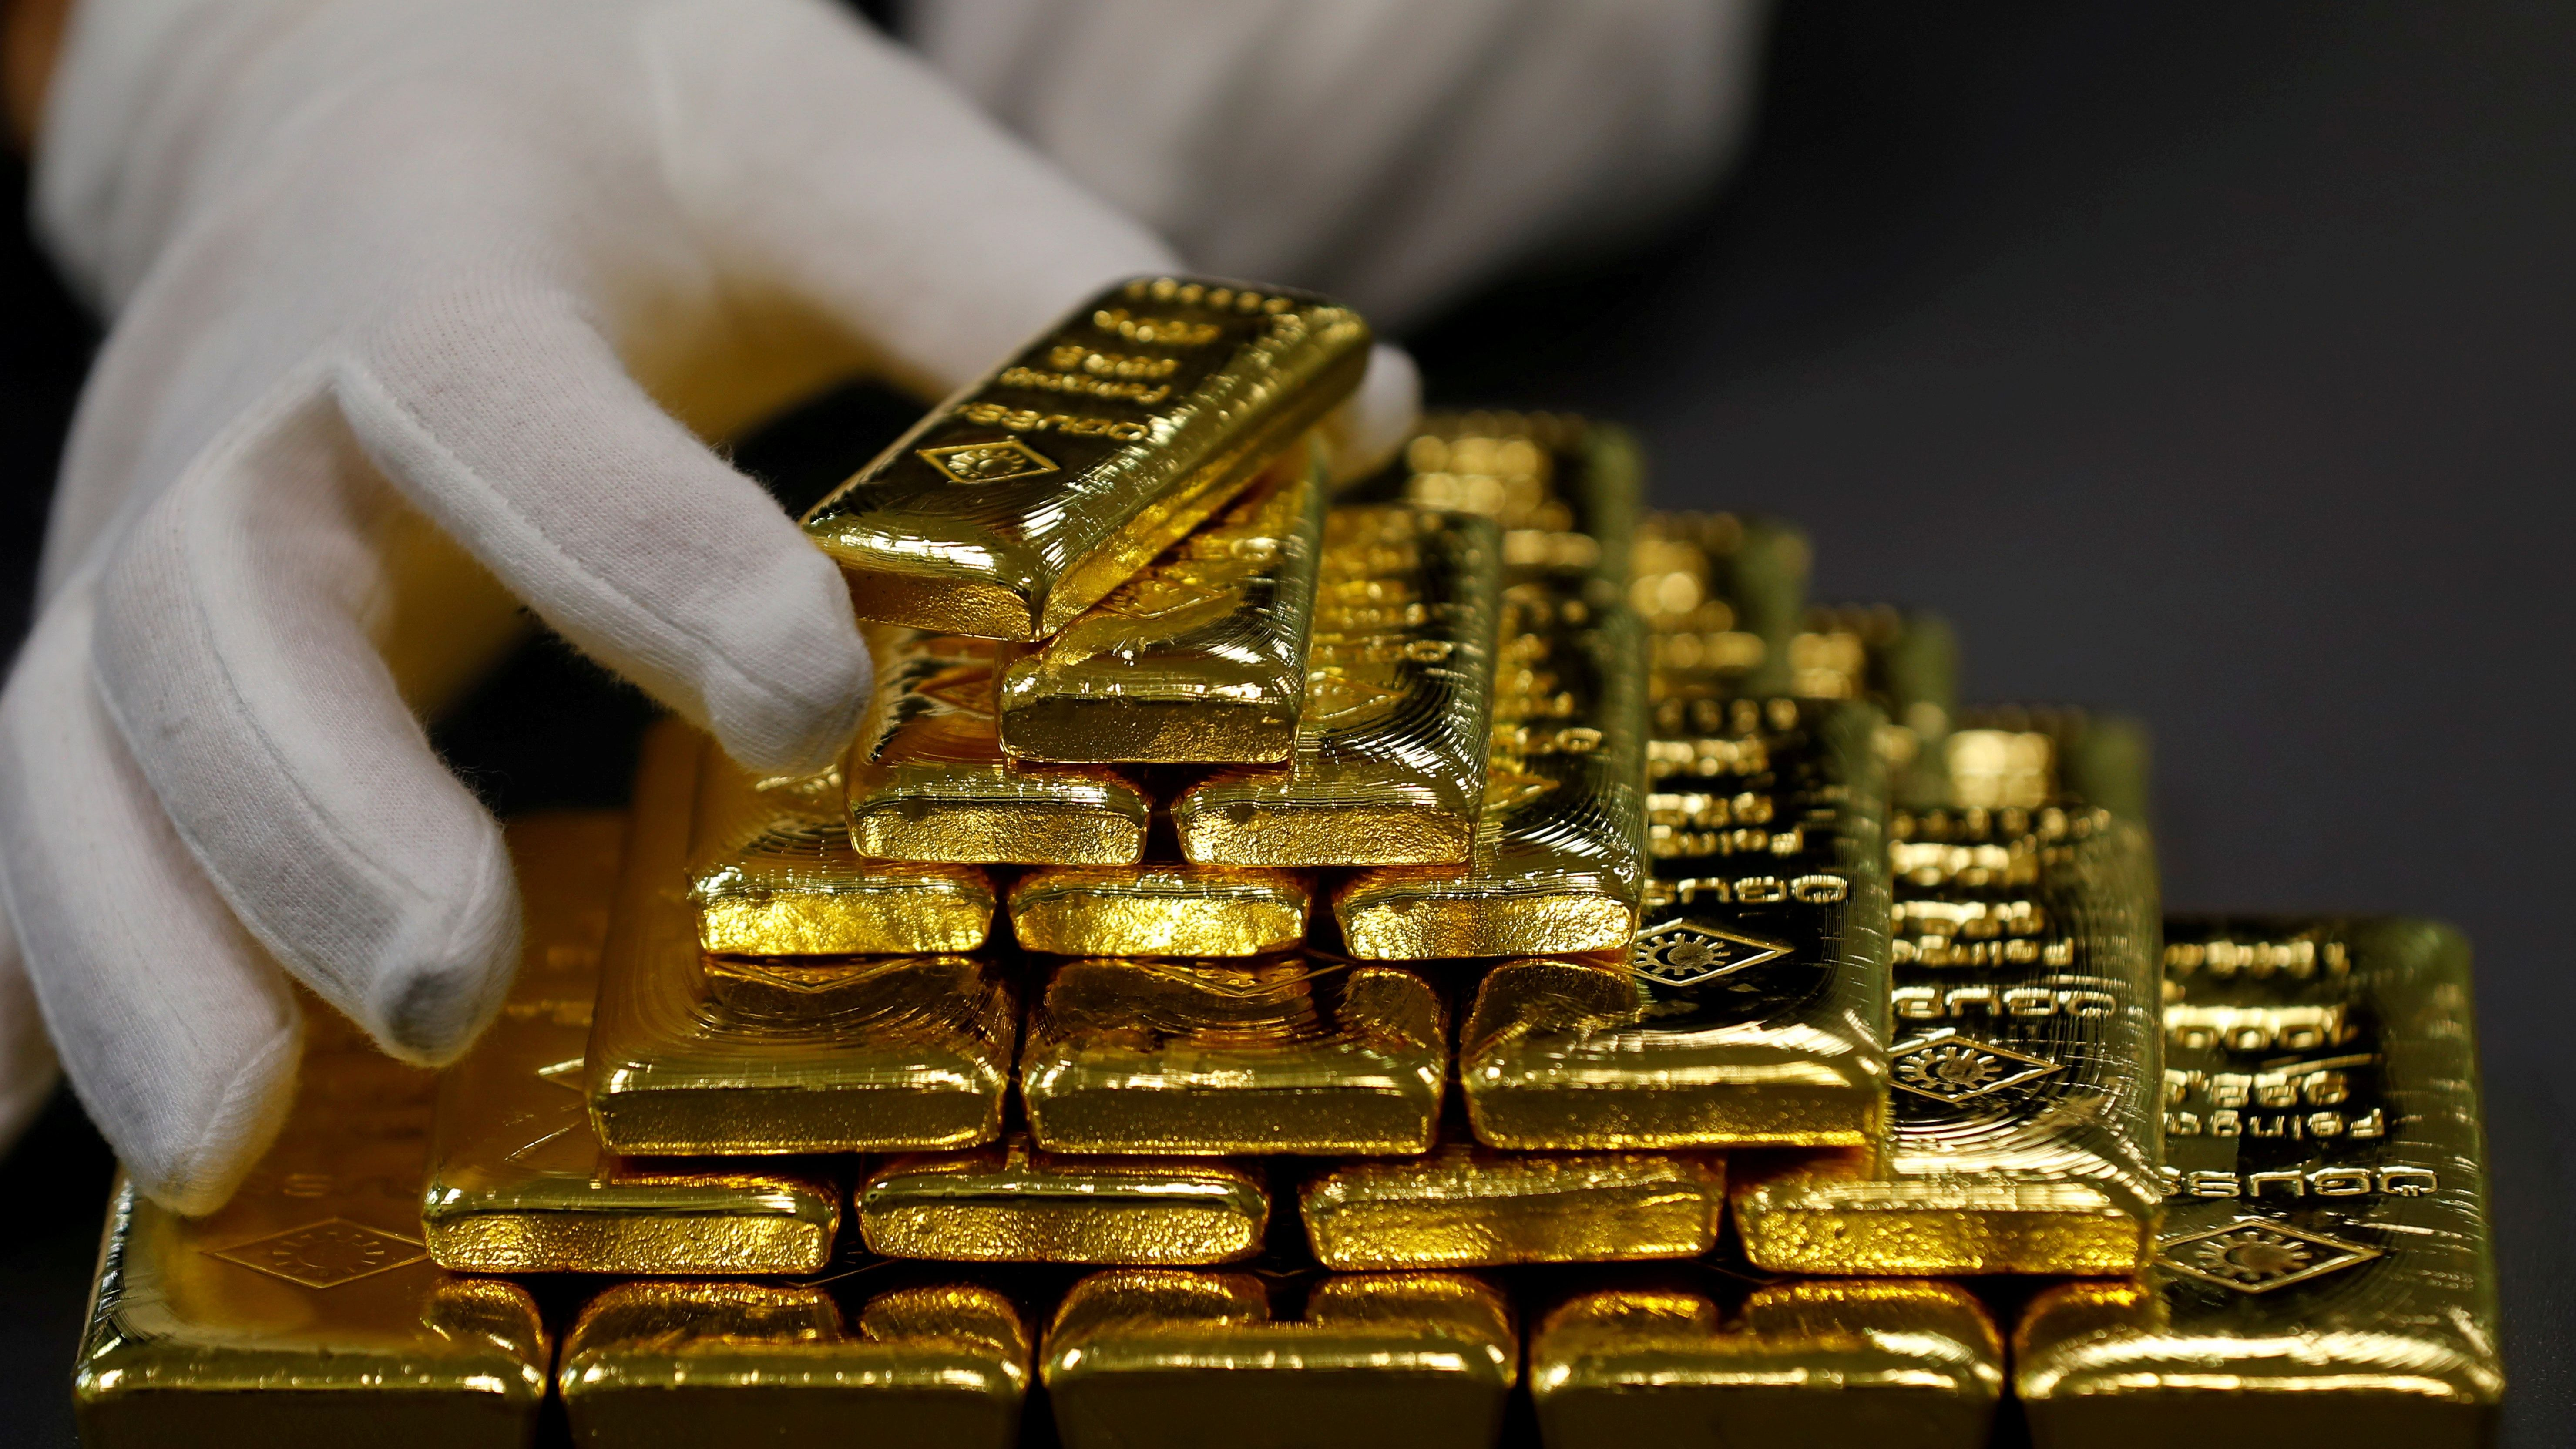 An employee sorts gold bars in the Austrian Gold and Silver Separating Plant 'Oegussa' in Vienna.